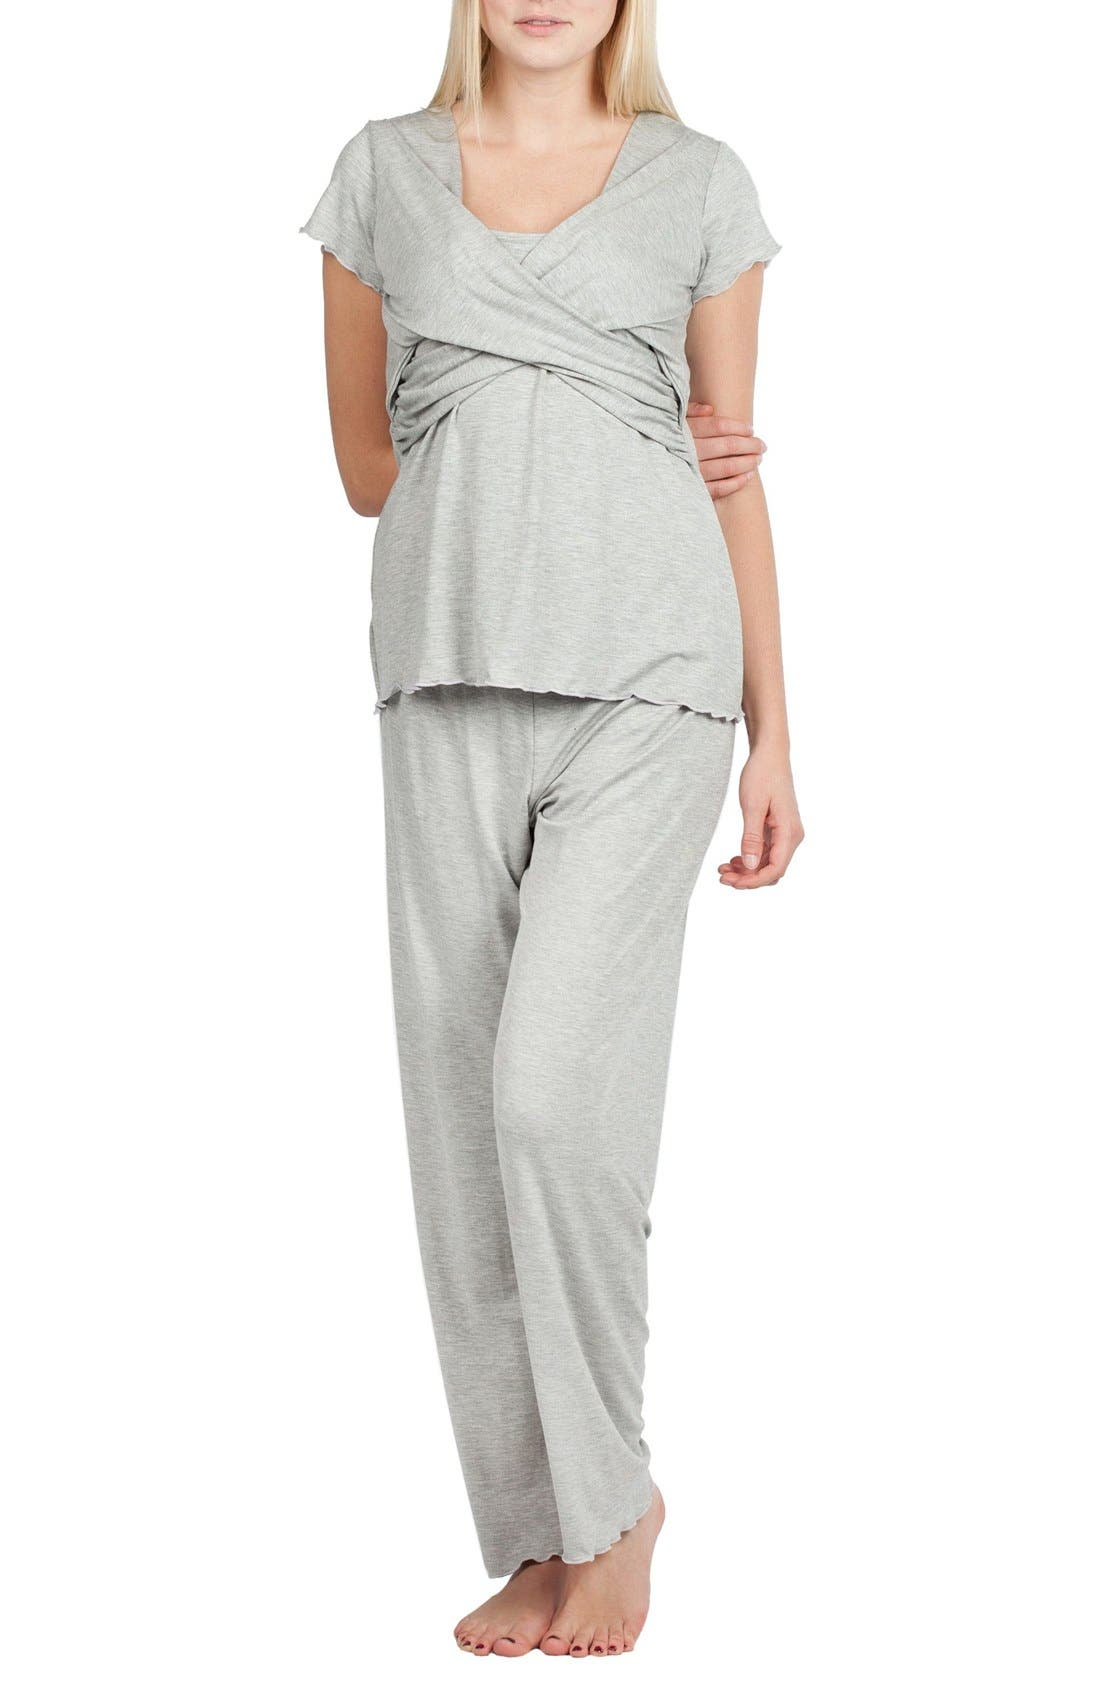 Sophia Maternity/Nursing Pajamas,                             Alternate thumbnail 8, color,                             HEATHER GREY